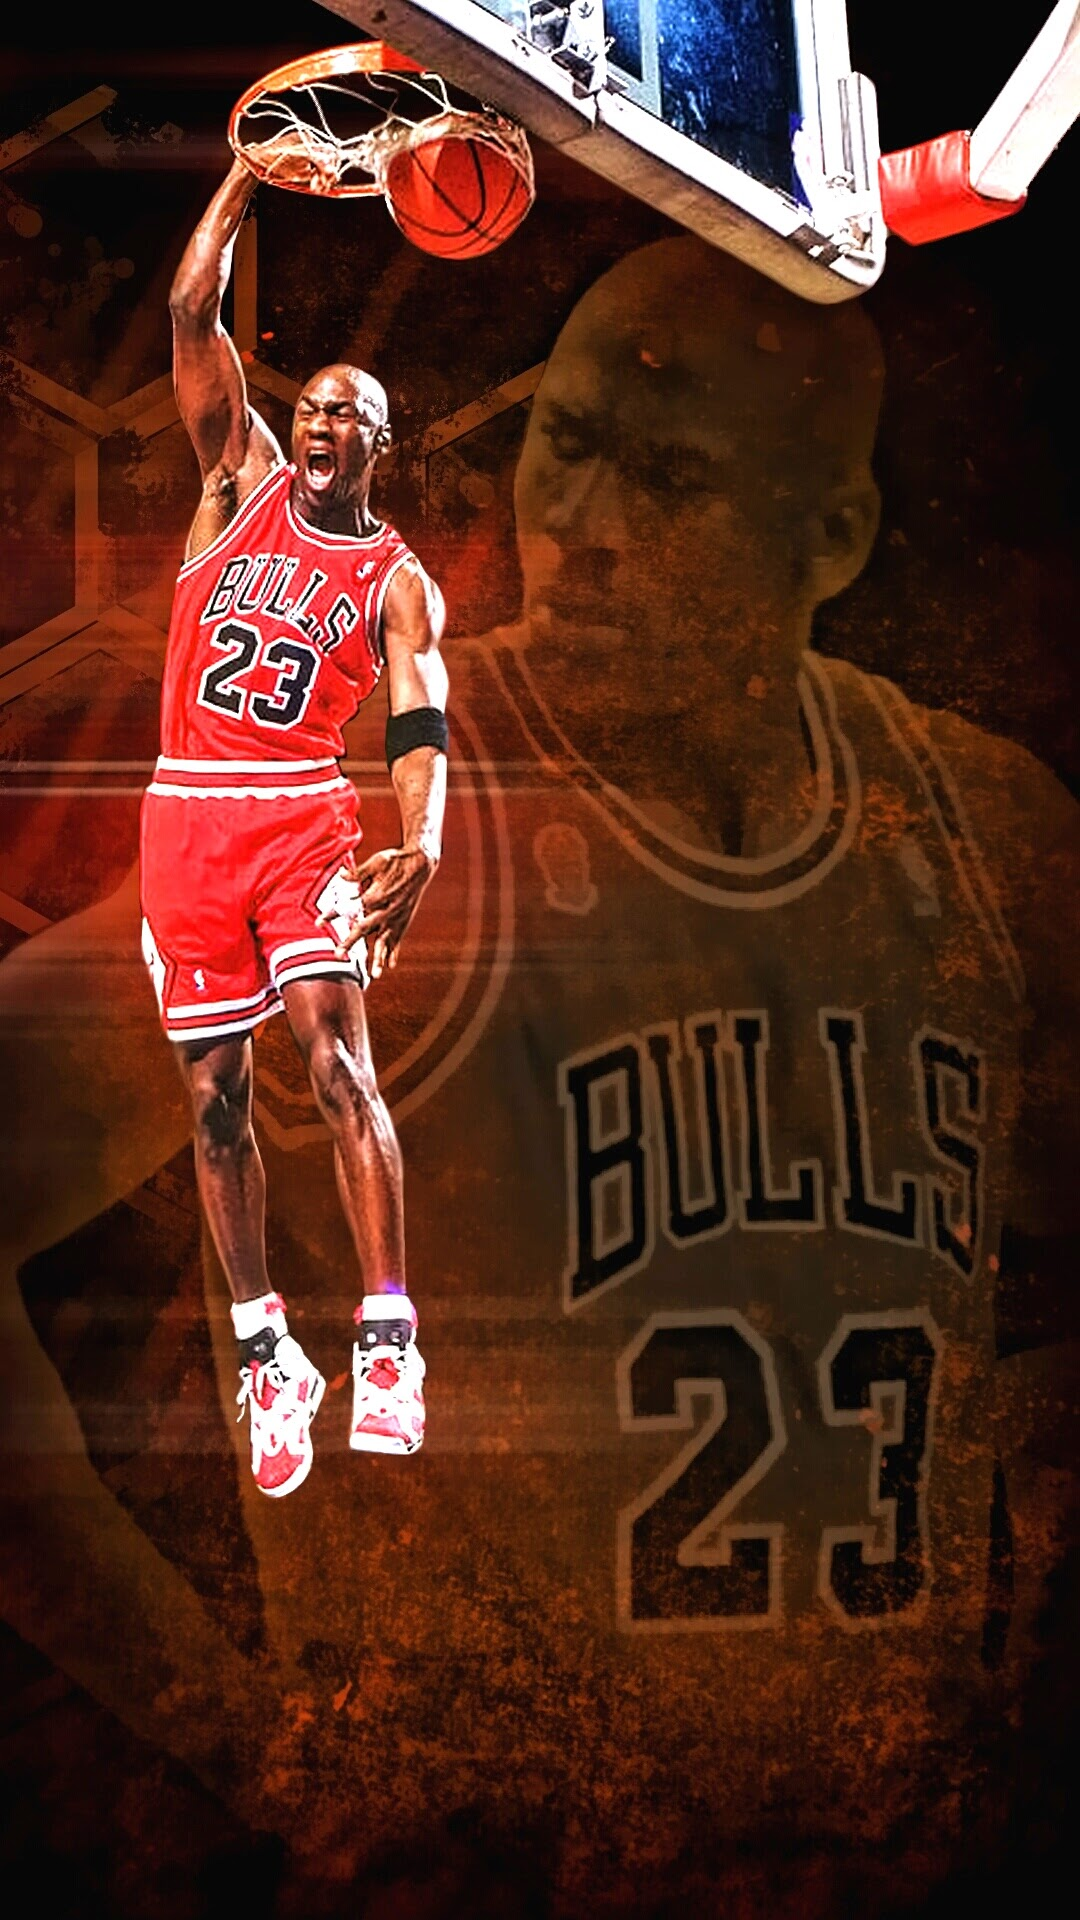 Michael Jordan Wallpaper For Iphone X 8 7 6 Free Download On